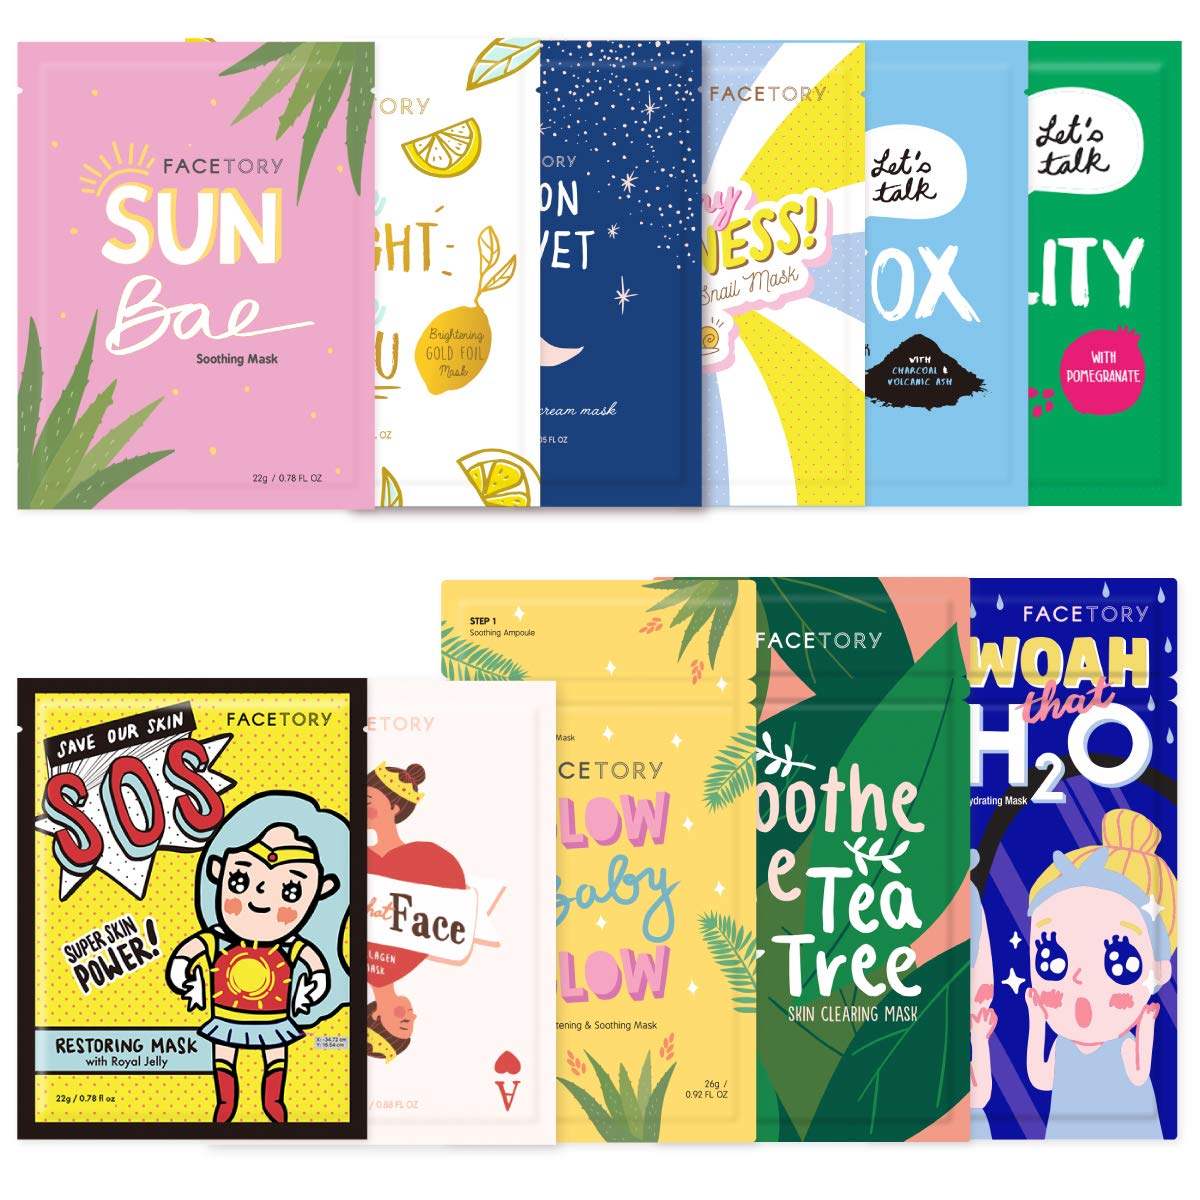 FaceTory Complete Original Collection (Pack of 11) Hydrating, Brightening, Soothing, and Moisturizing Facial Sheet Masks - For All Skin Types